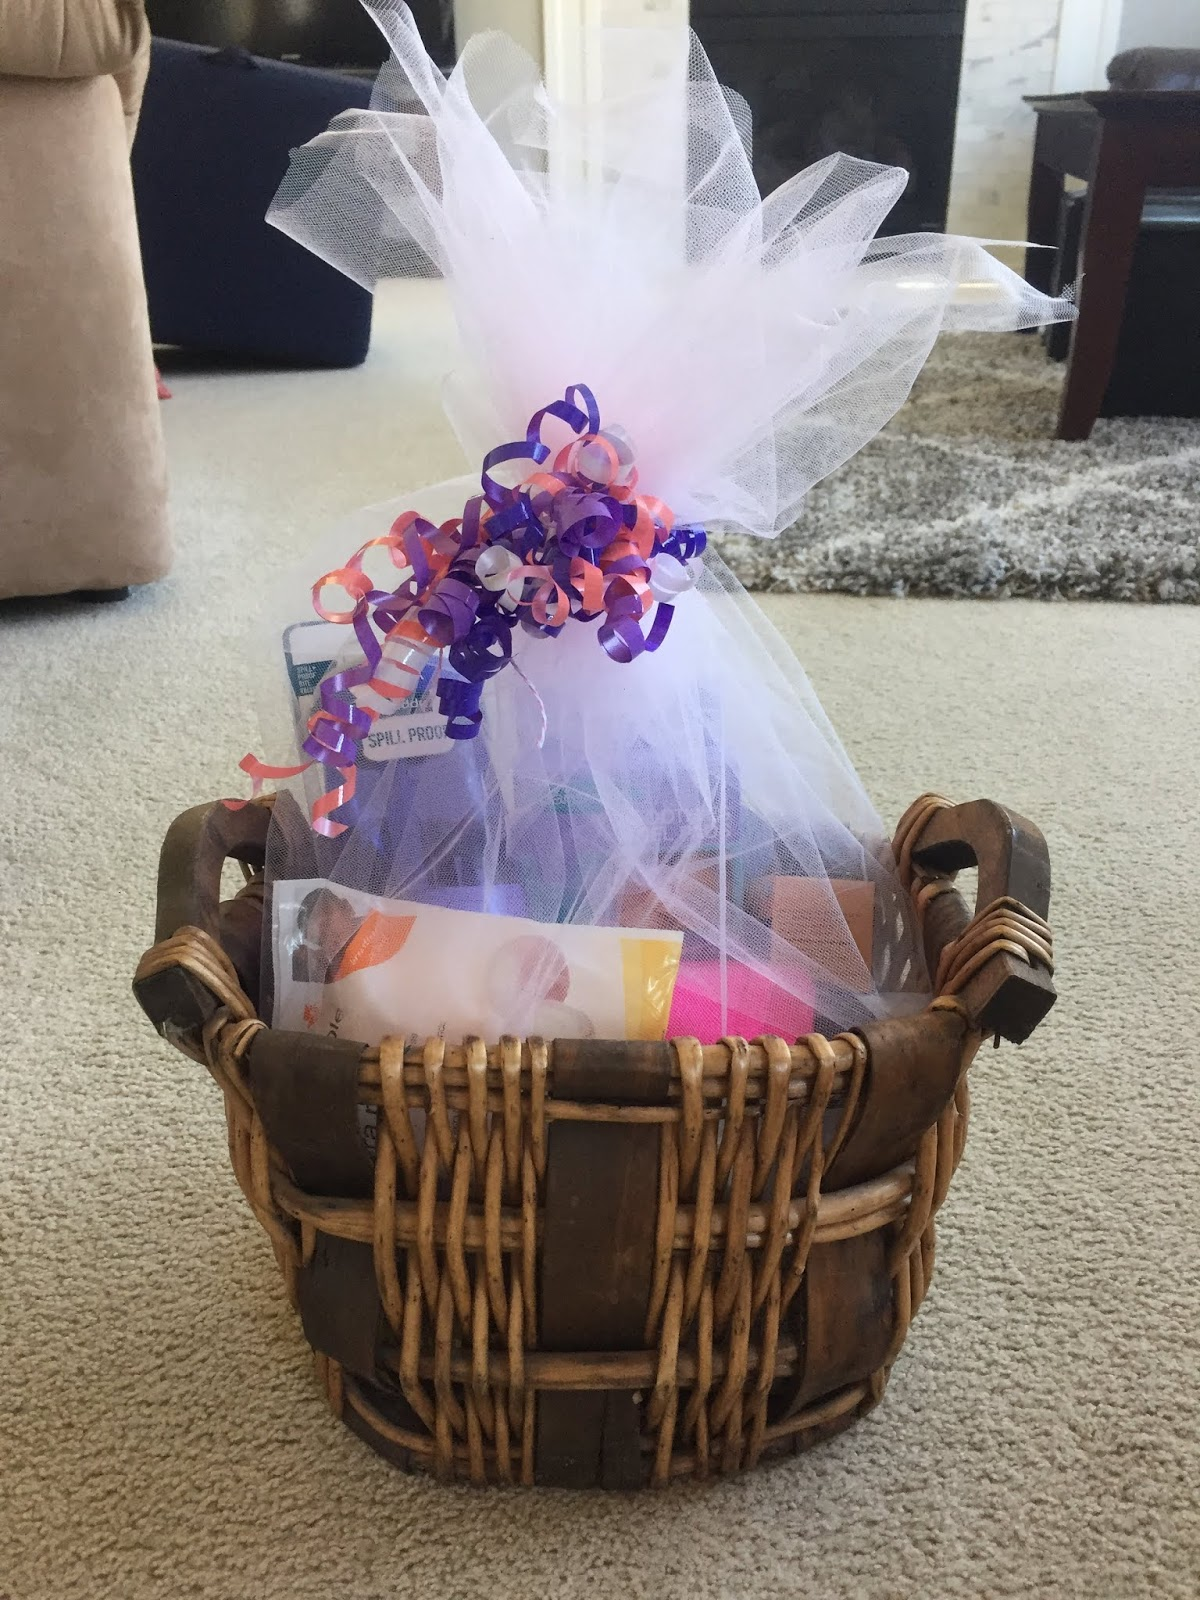 A Homebody At Heart Baby Shower Gift Basket Ideas